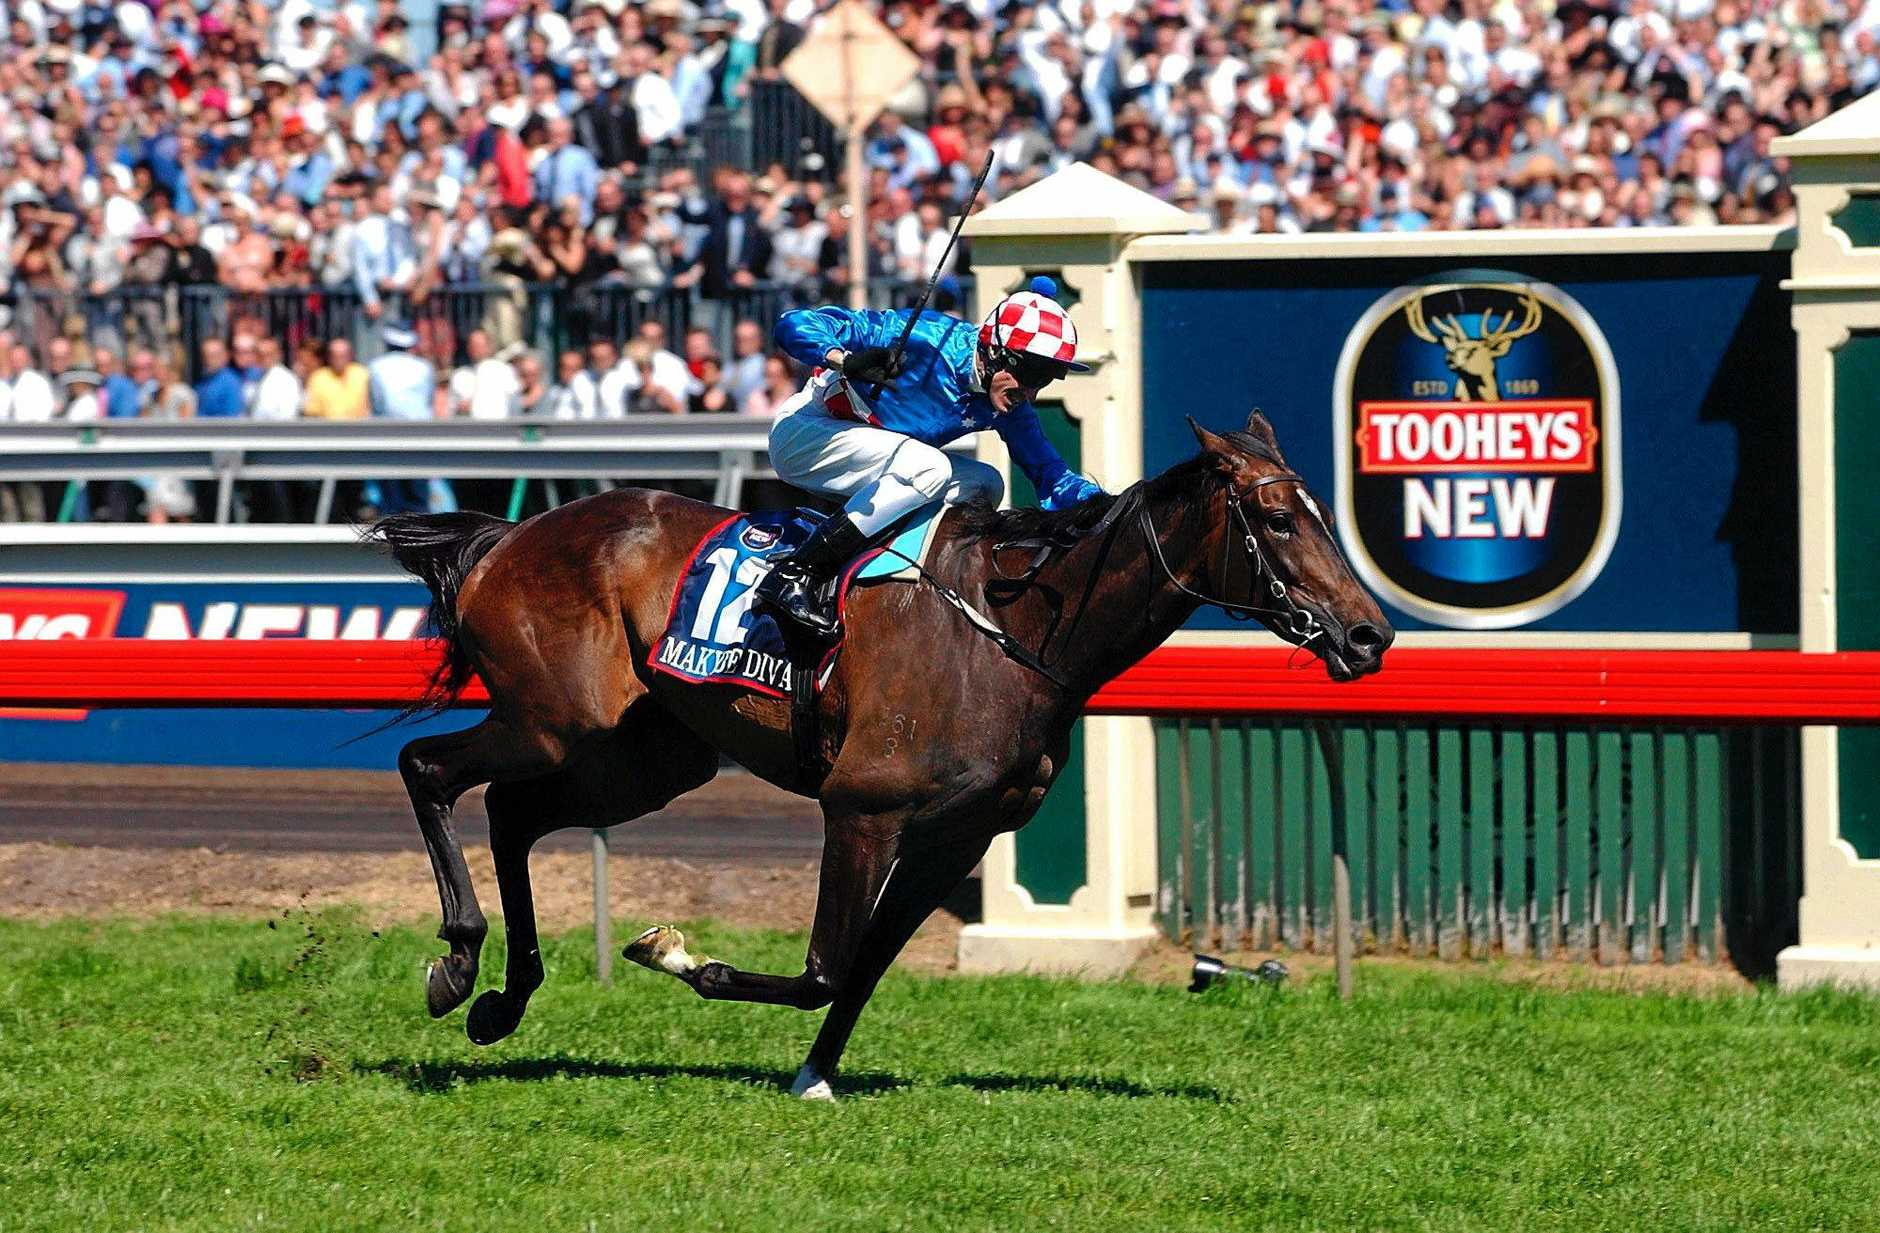 Melbourne, November 4, 2003. Makybe Diva jockeyed by Glen Boss and trained by David Hall wins the Melbourne Cup on the first Tuesday in November at Flemington Racecourse. (AAP Image/Julian Smith) NO ARCHIVING